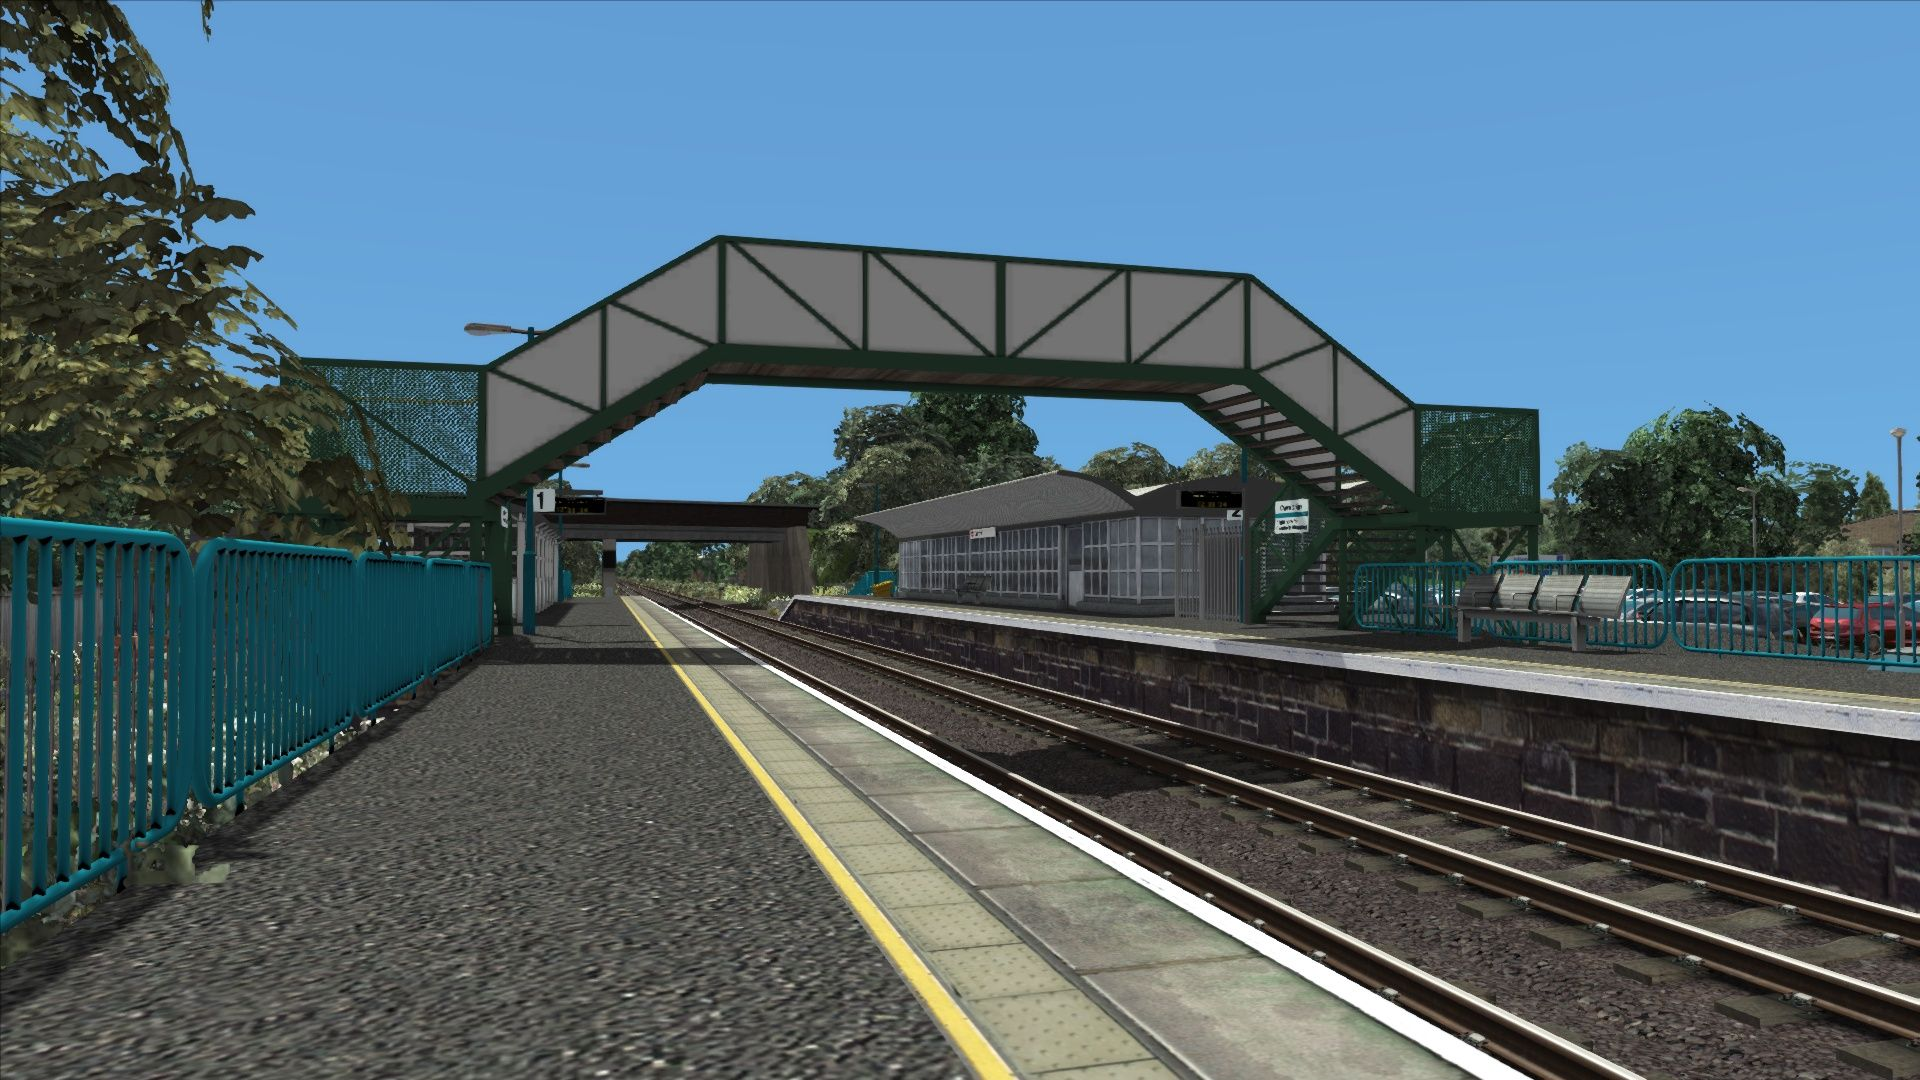 Screenshot_[BMG] Welsh Marches Line - Newport to Shrewsbury_51.65751--3.015